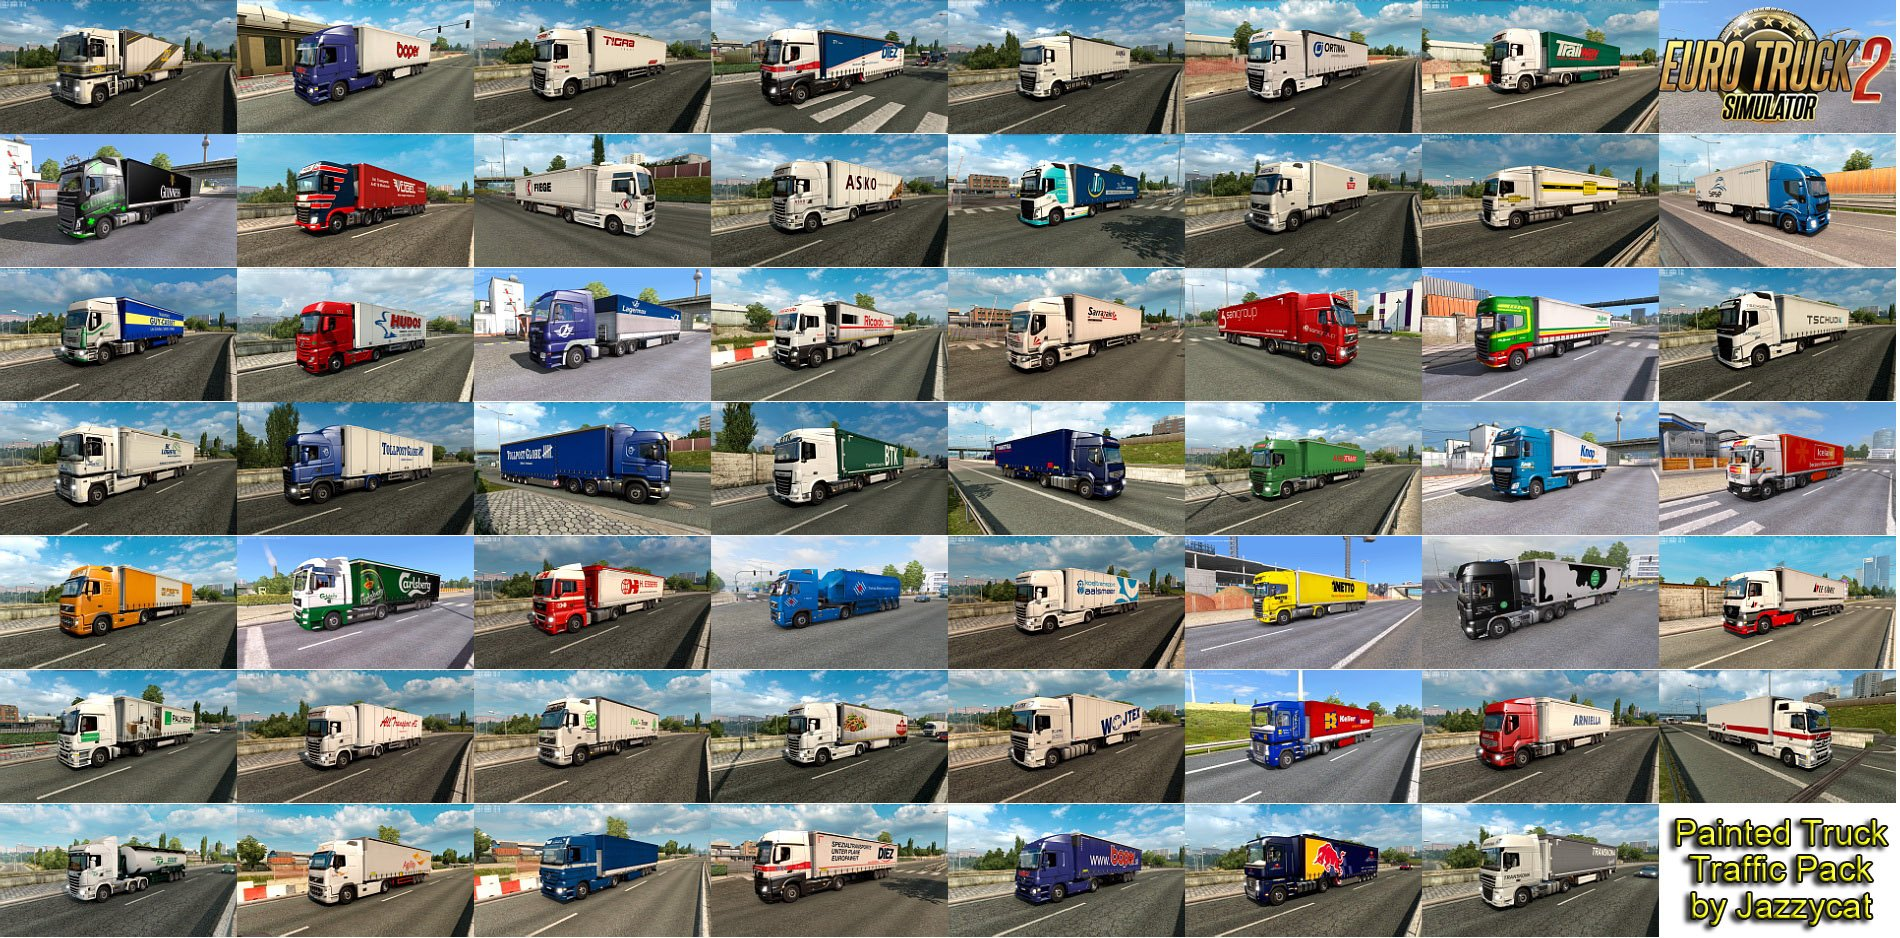 Painted Truck Traffic Pack v6.2.1 by Jazzycat